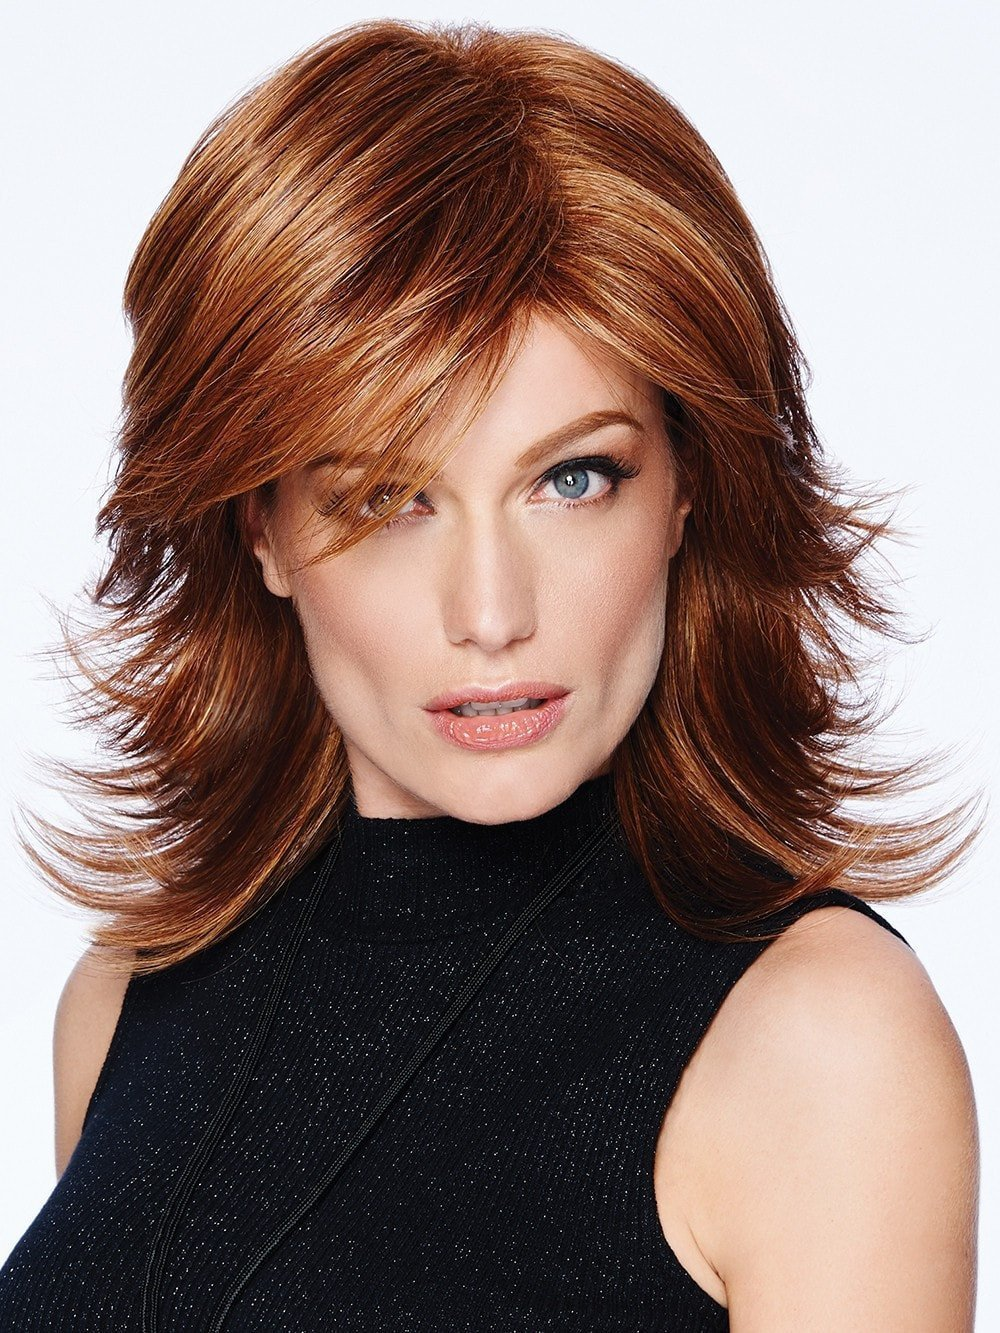 New Modern Flip Wig By Hairdo New – Wigs Com – The Wig Experts™ Ideas With Pictures